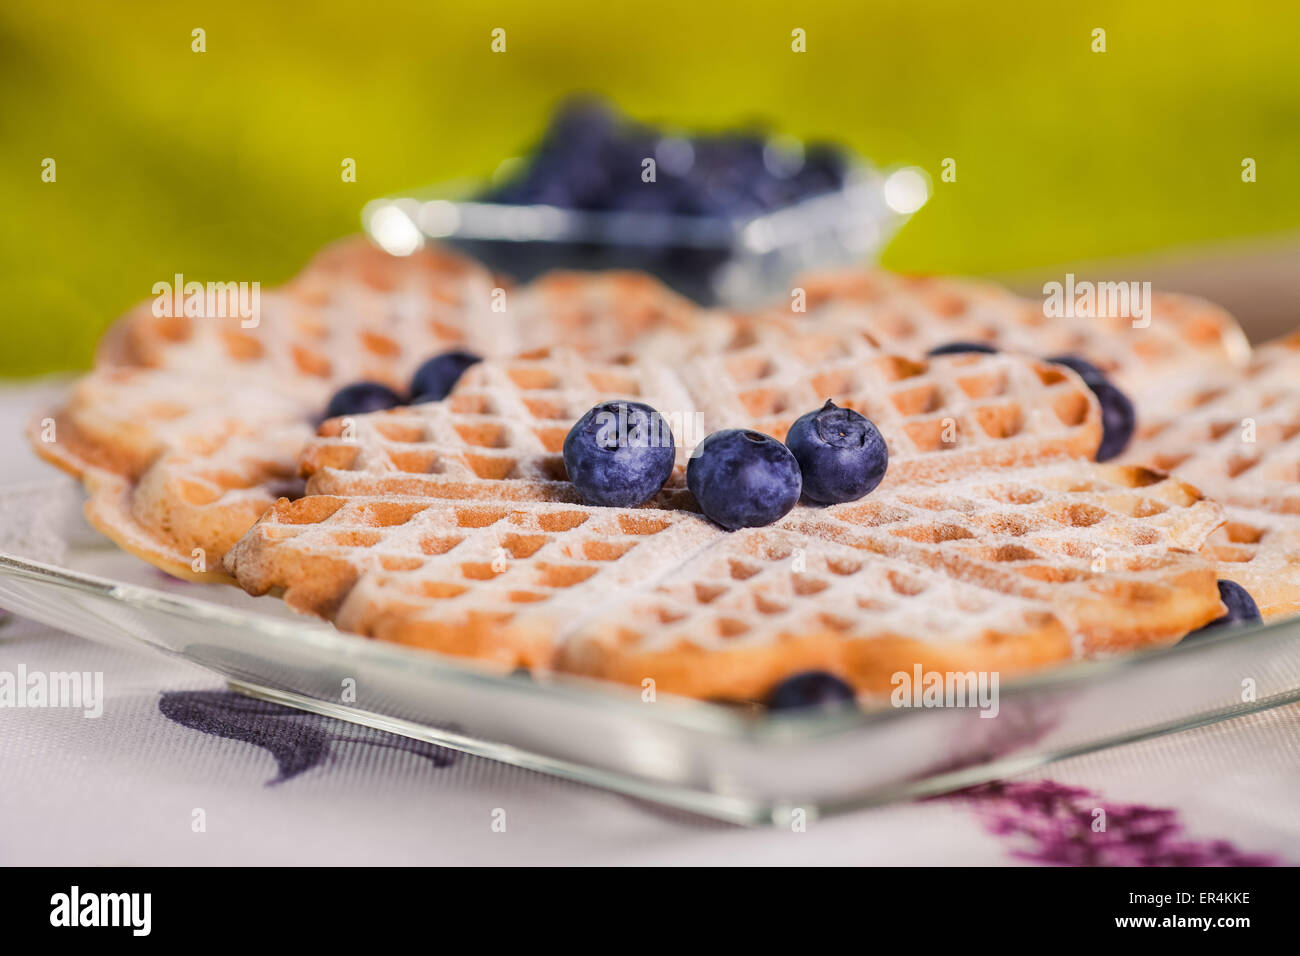 Sweet waffles for breakfast on wooden table. Debica, Poland - Stock Image